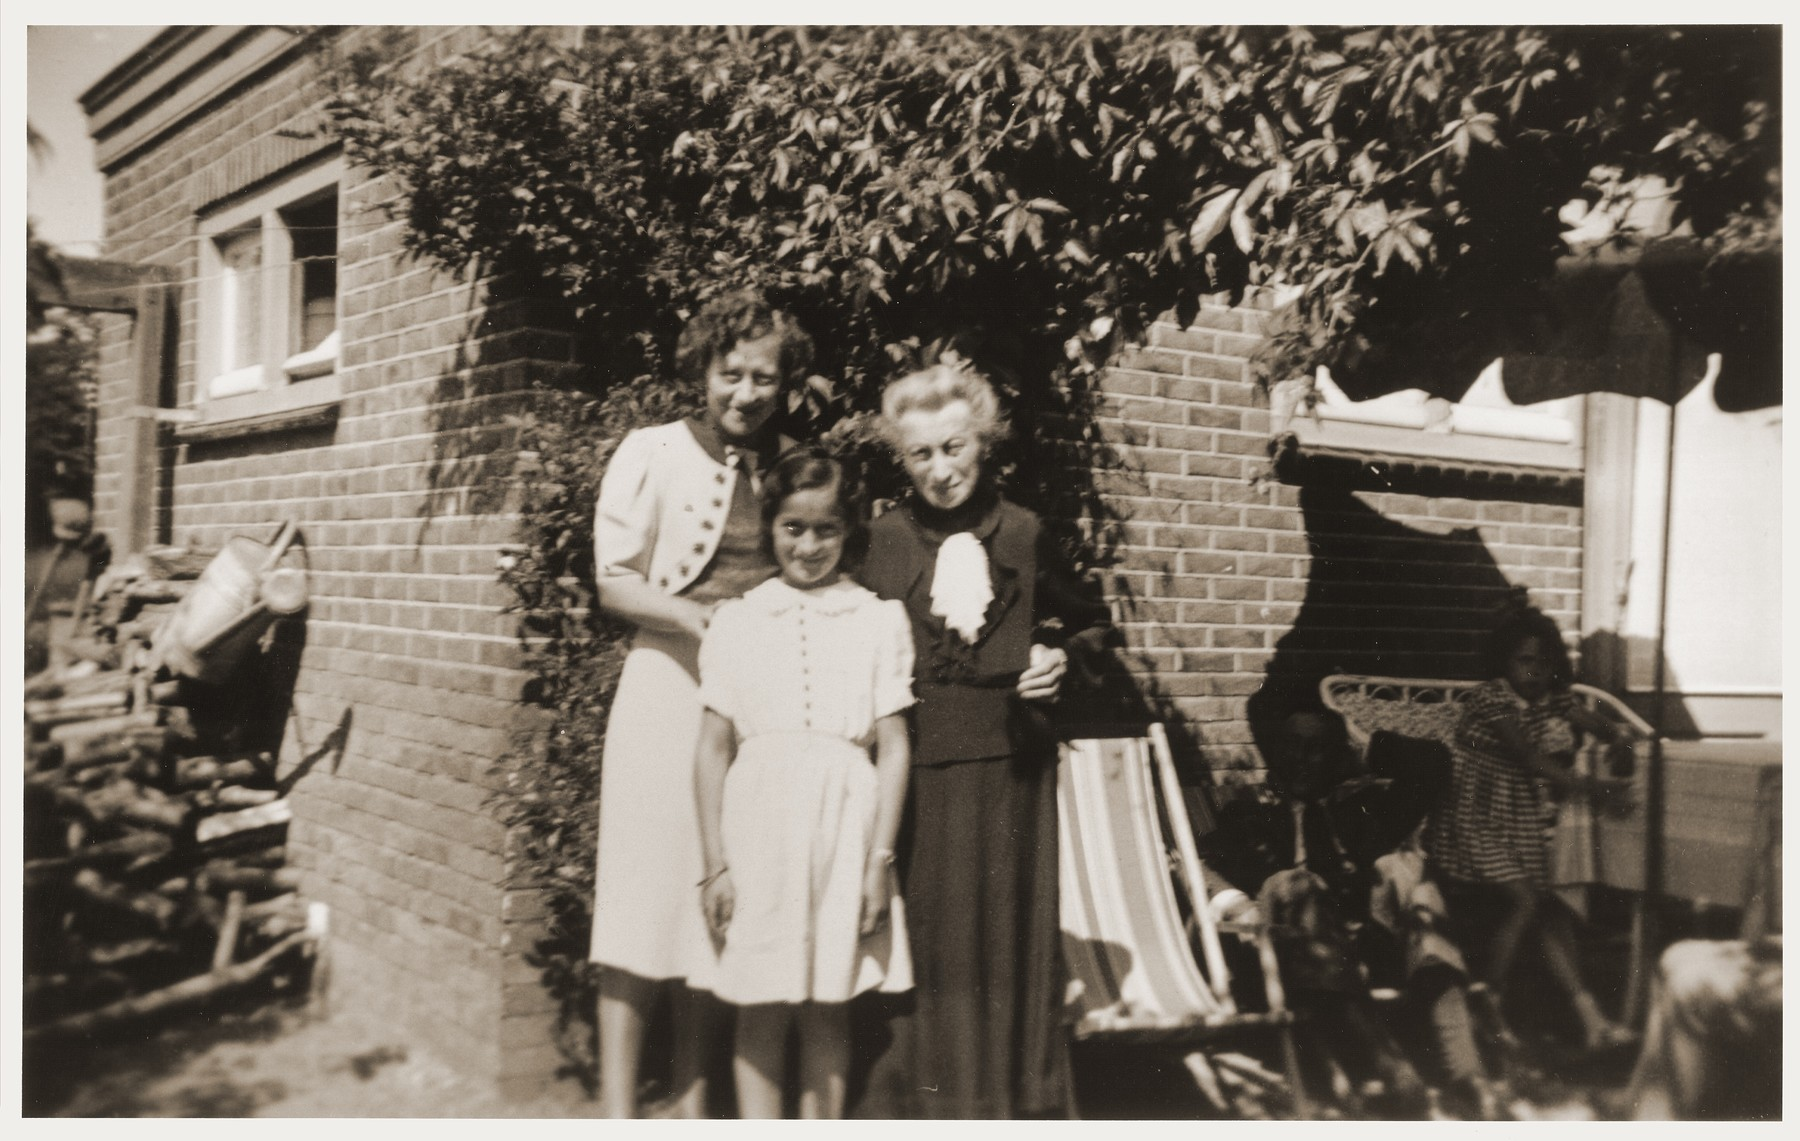 Suse and Kate Grunbaum stand beside Kate's mother, Frieda Kahn.    Frieda joined her family in Holland in 1941, and she committed suicide two days before the family was supposed to go into hiding.  She had been extremely ill and realized she could not survive the conditions in hiding without endangering the rest of the family.